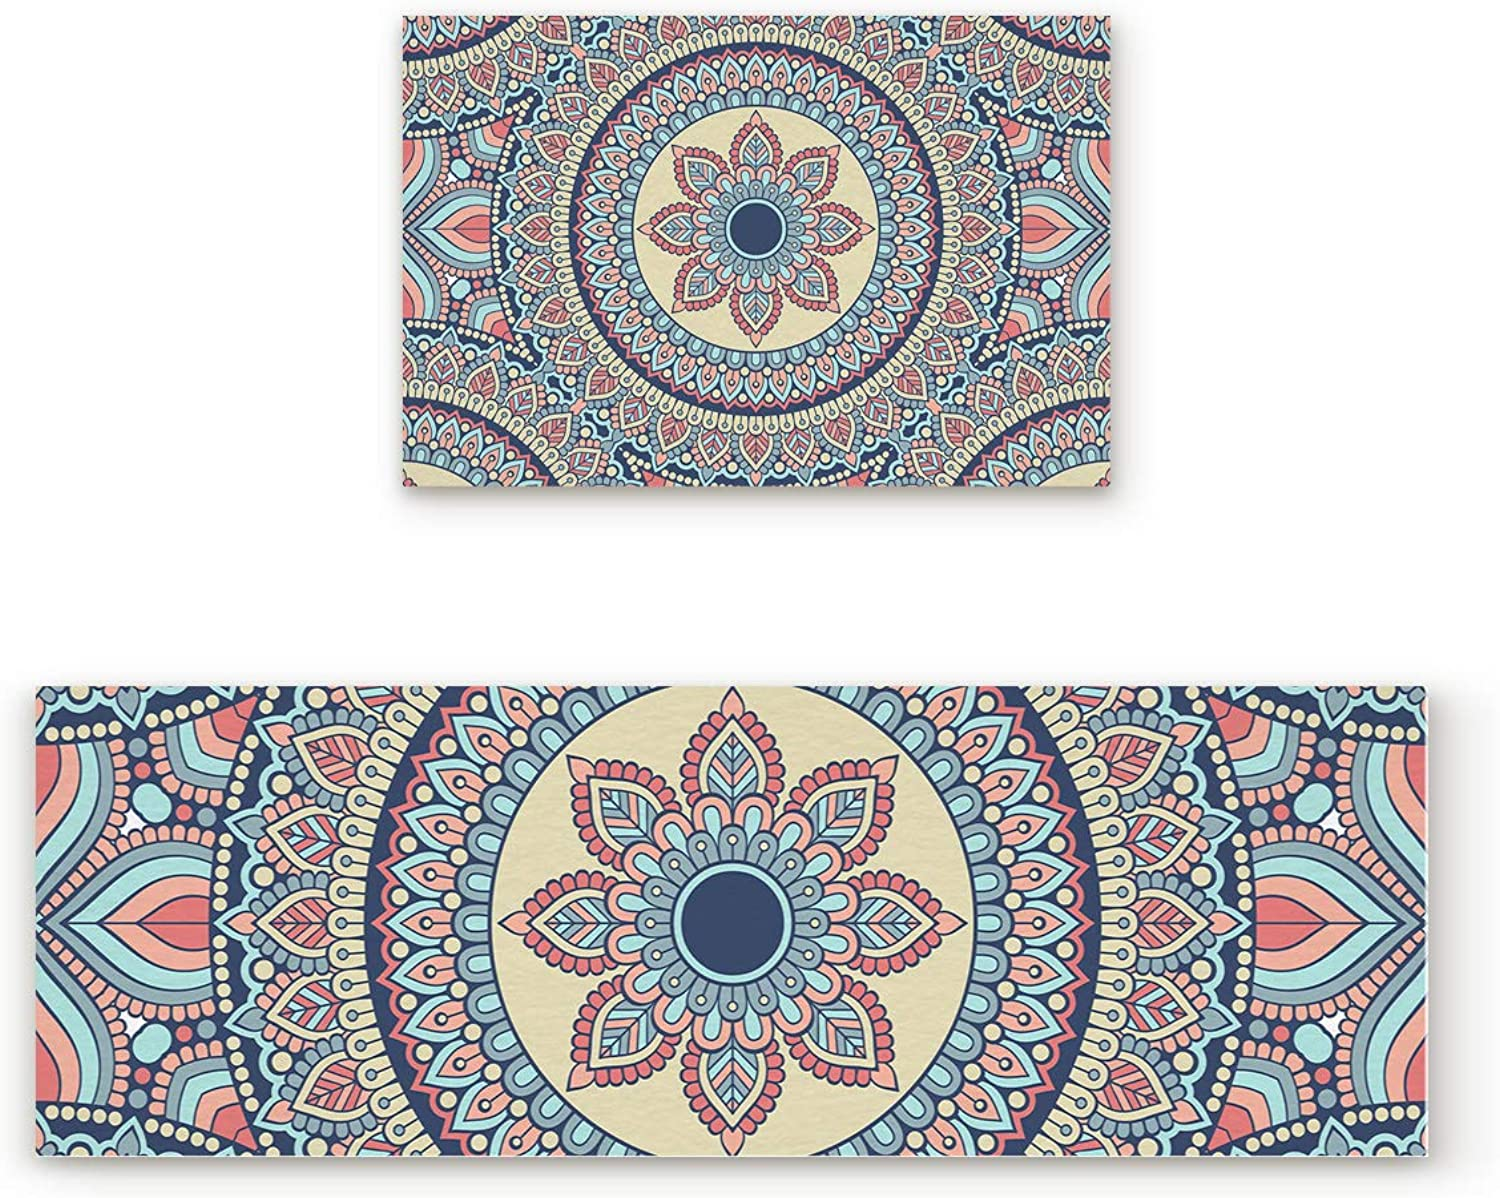 Aomike 2 Piece Non-Slip Kitchen Mat Rubber Backing Doormat Mandala Style Ethnic Flower Runner Rug Set, Hallway Living Room Balcony Bathroom Carpet Sets (19.7  x 31.5 +19.7  x 47.2 )